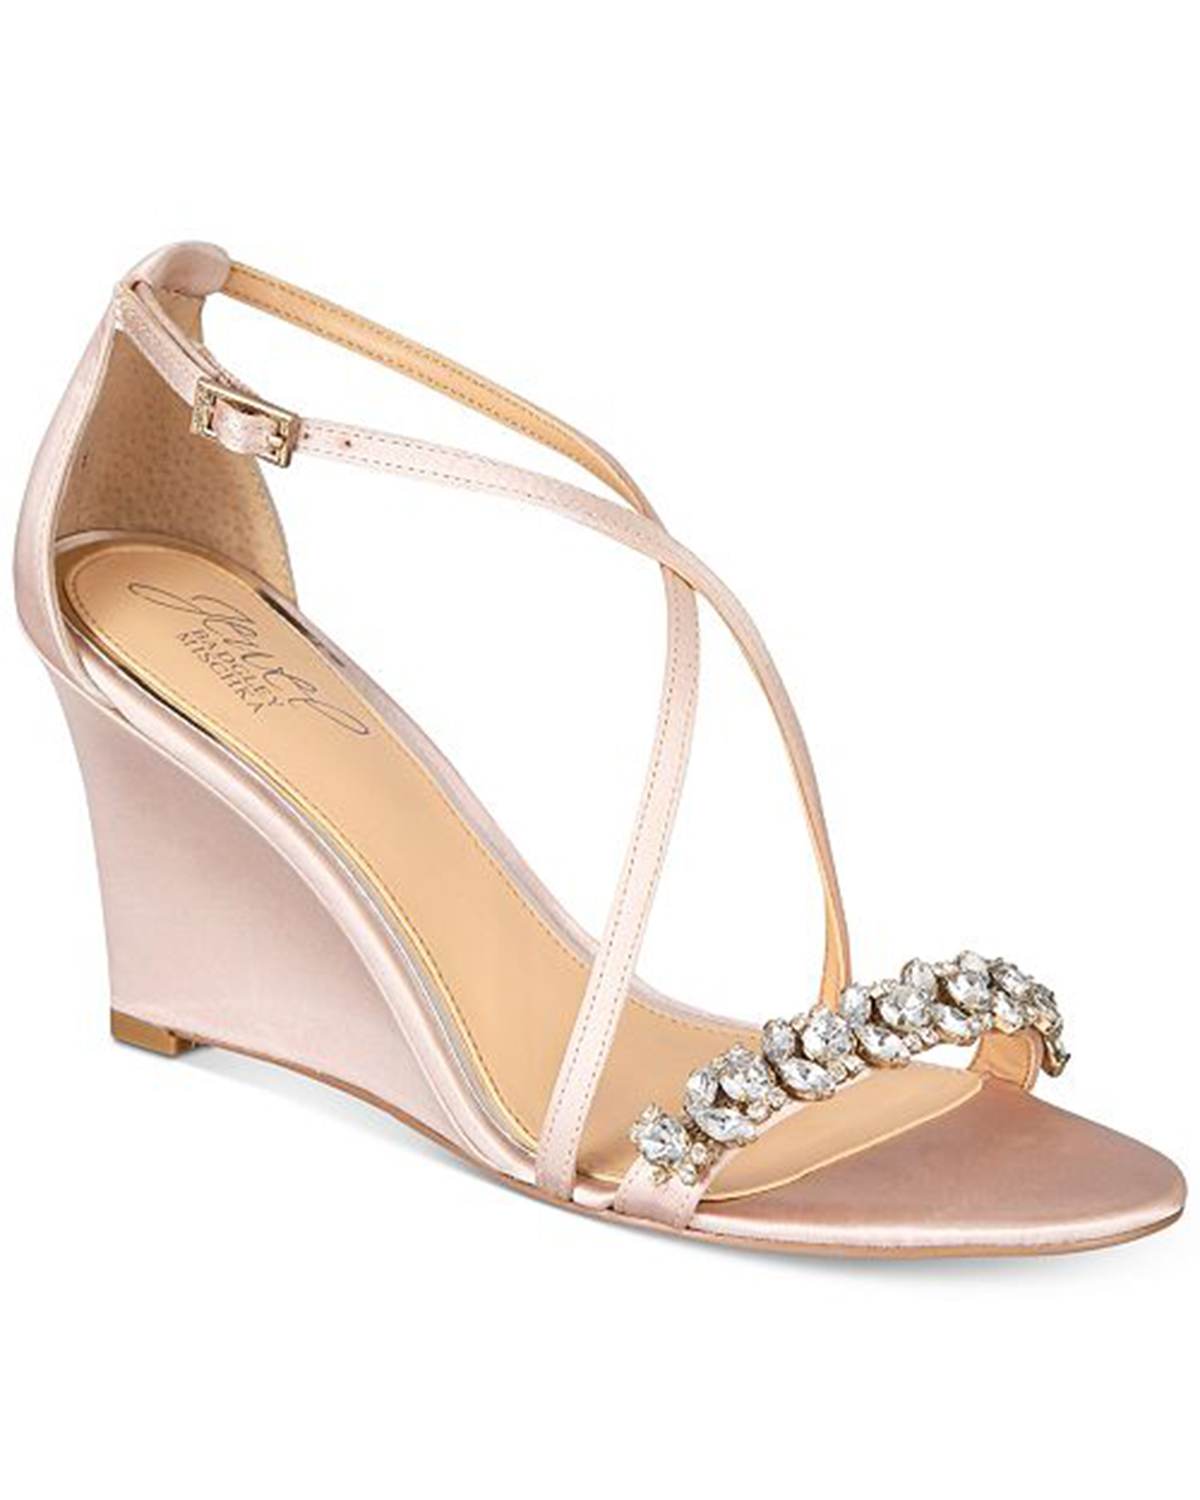 wedding wedges pink satin with rhinestone front